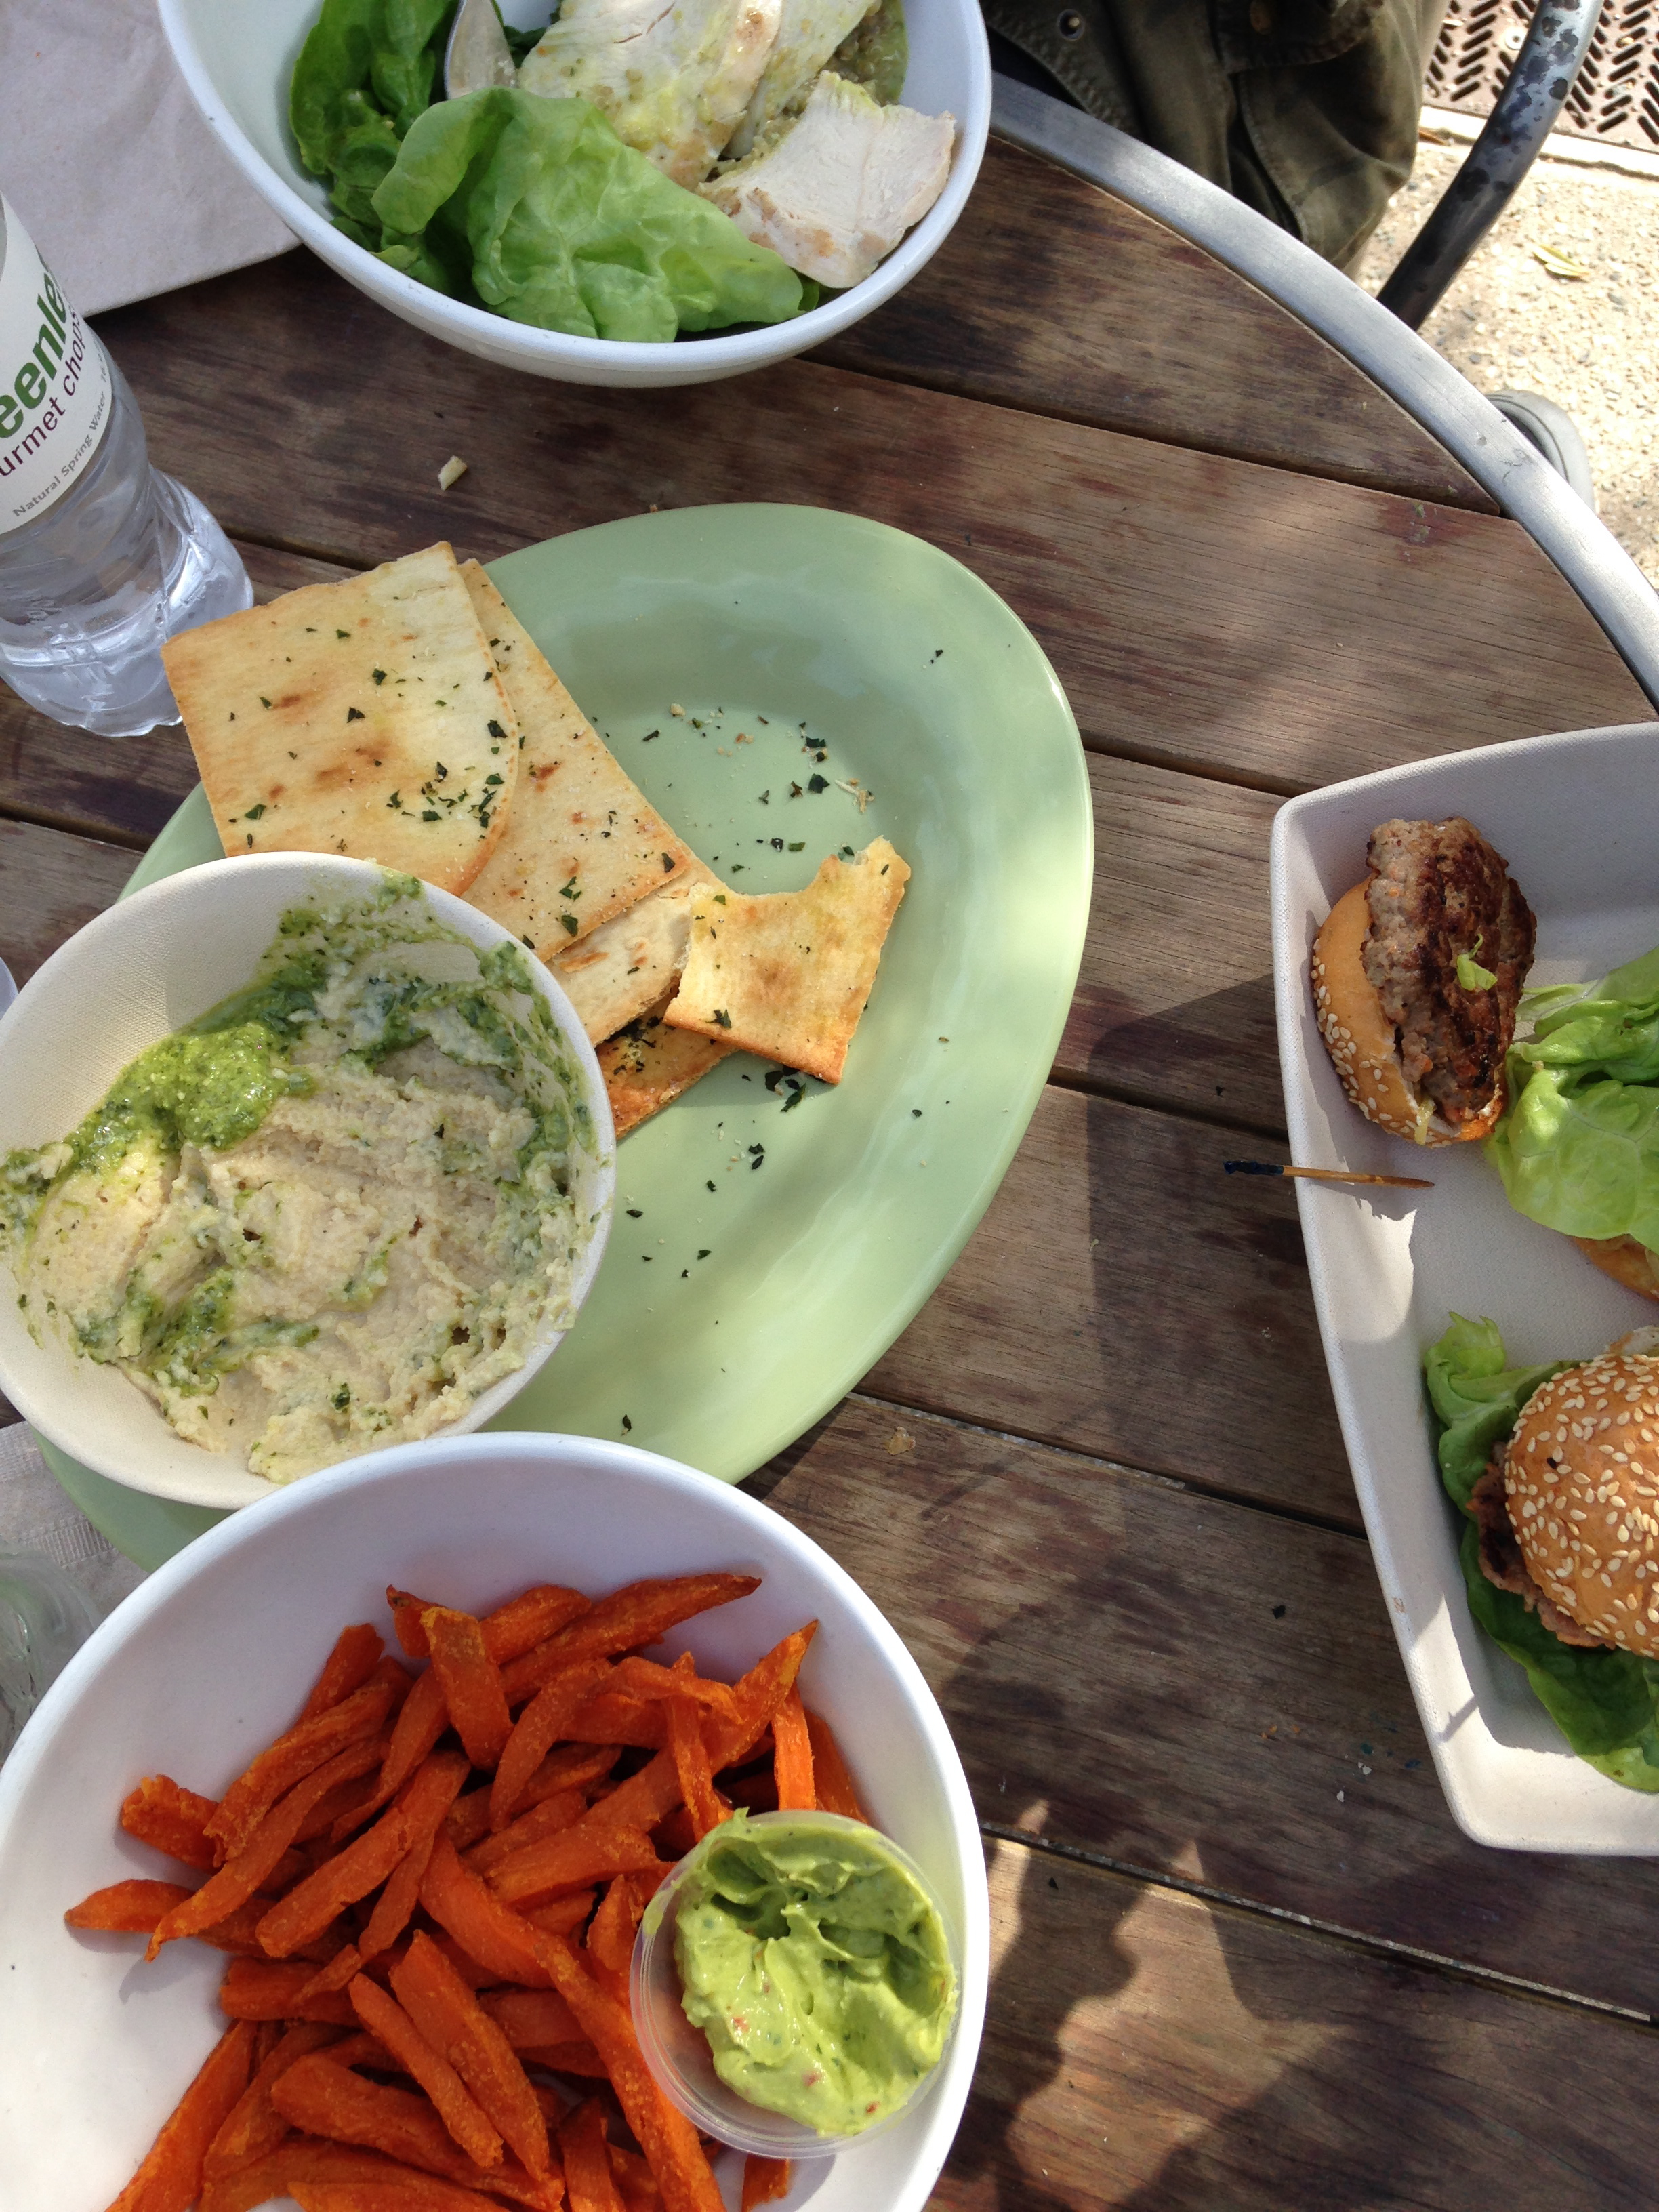 Delicious & healthy lunch at Greenleaf. So good we didn't wait to eat before the picture.